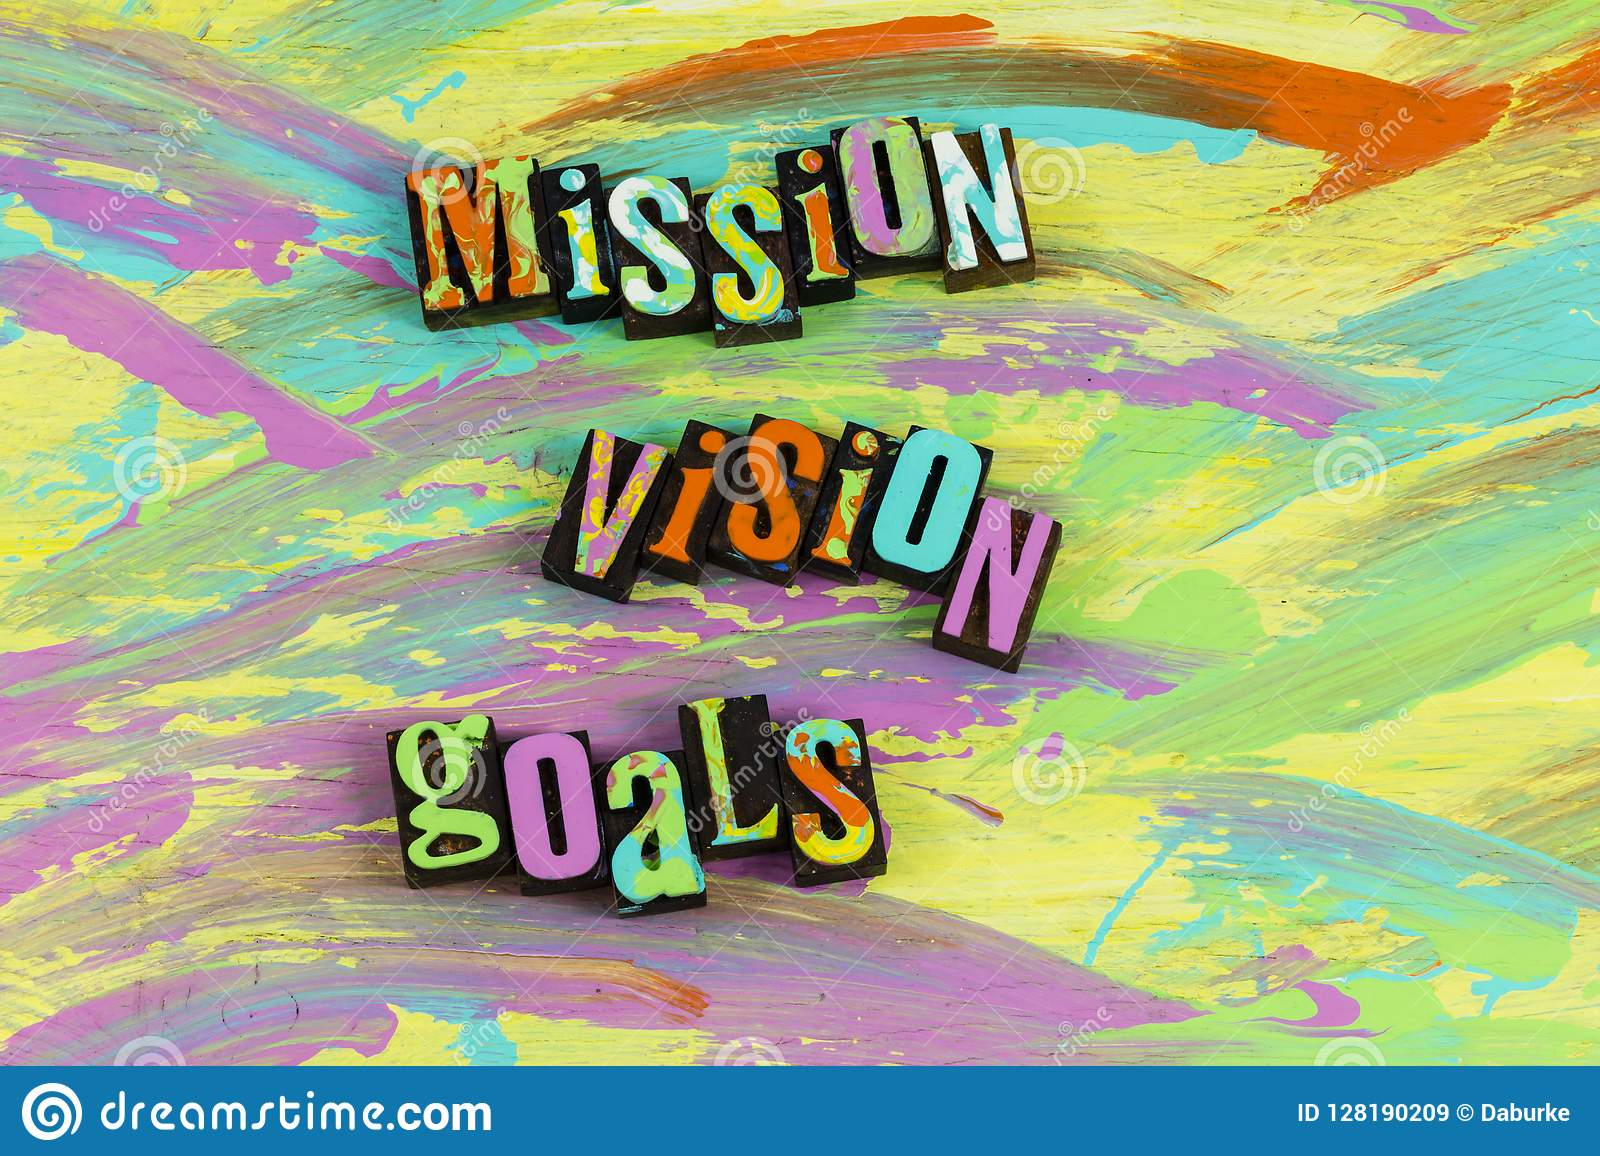 Mission vision goals completion successful